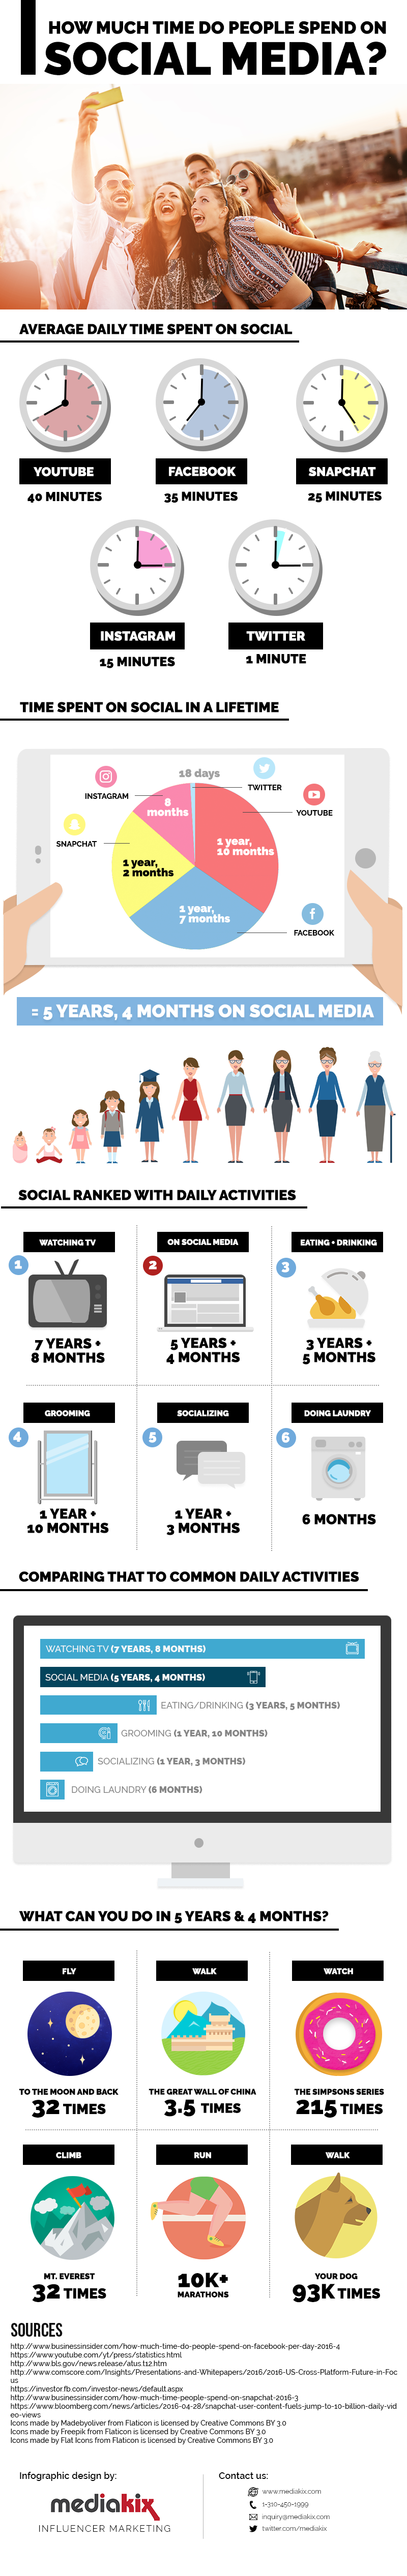 How Much Time People Spend on Social Media in a Lifetime [Infographic] | Social Media Today